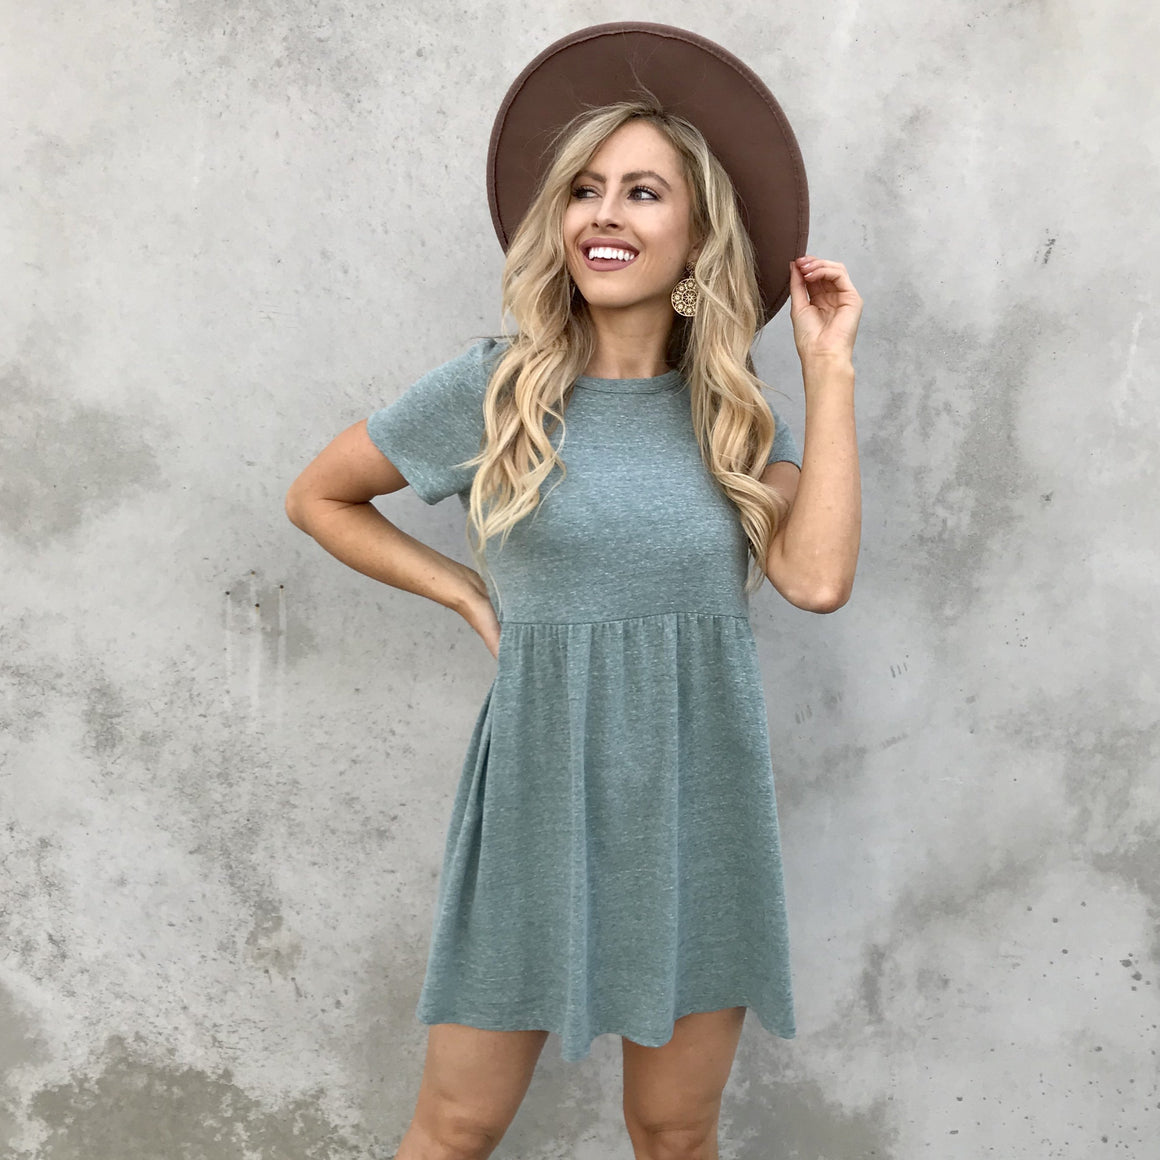 Carry On Babydoll Dress in Seafoam - Dainty Hooligan